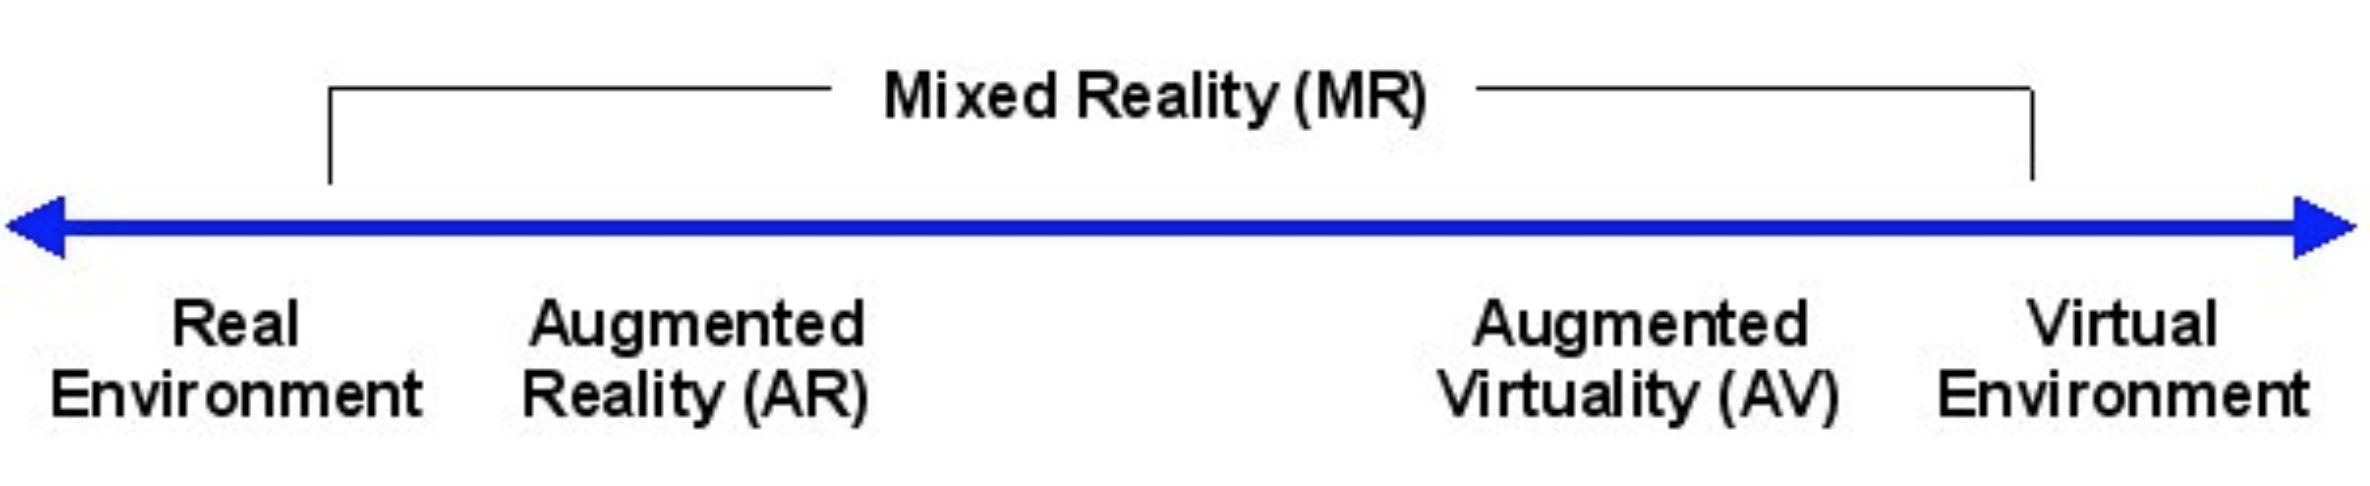 The reality - virtuality continuum